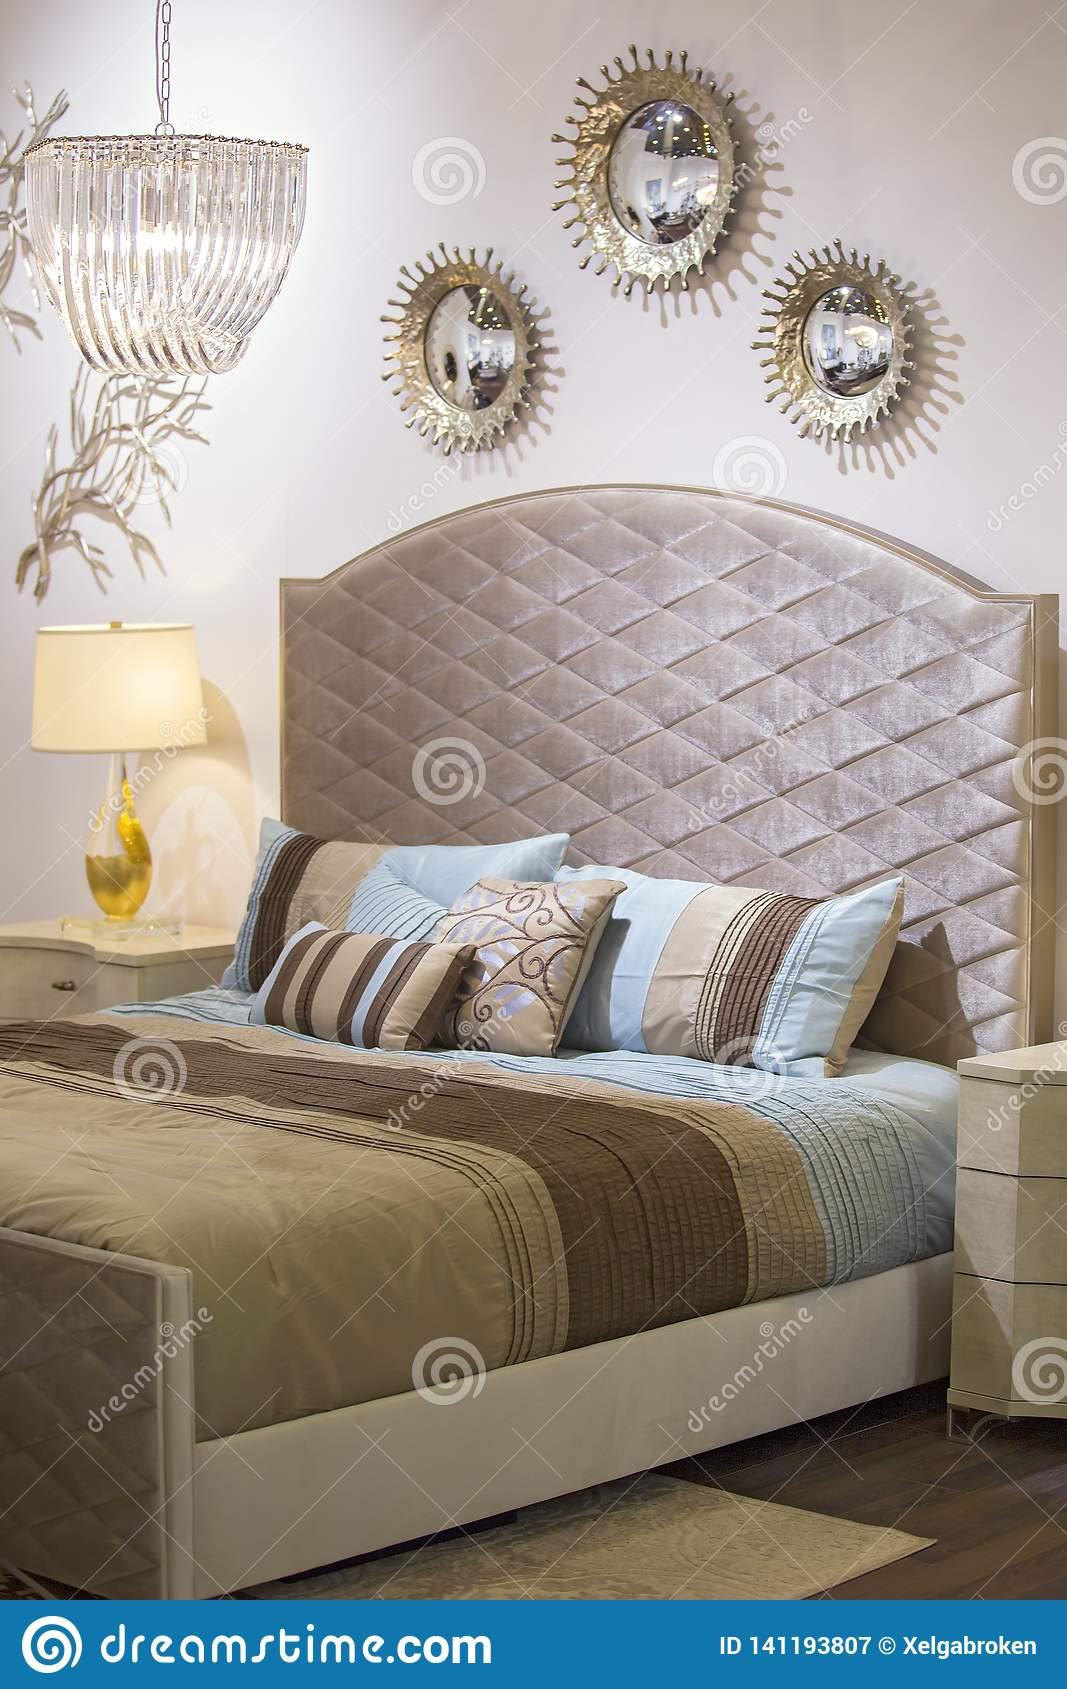 Fashionable Modern Bedroom Bed Chandelier Mirrors On The Wall Bedside Table And Lamp Beautiful Textiles On The Bed Chic Stock Image Image Of Architecture Luxurious 141193807